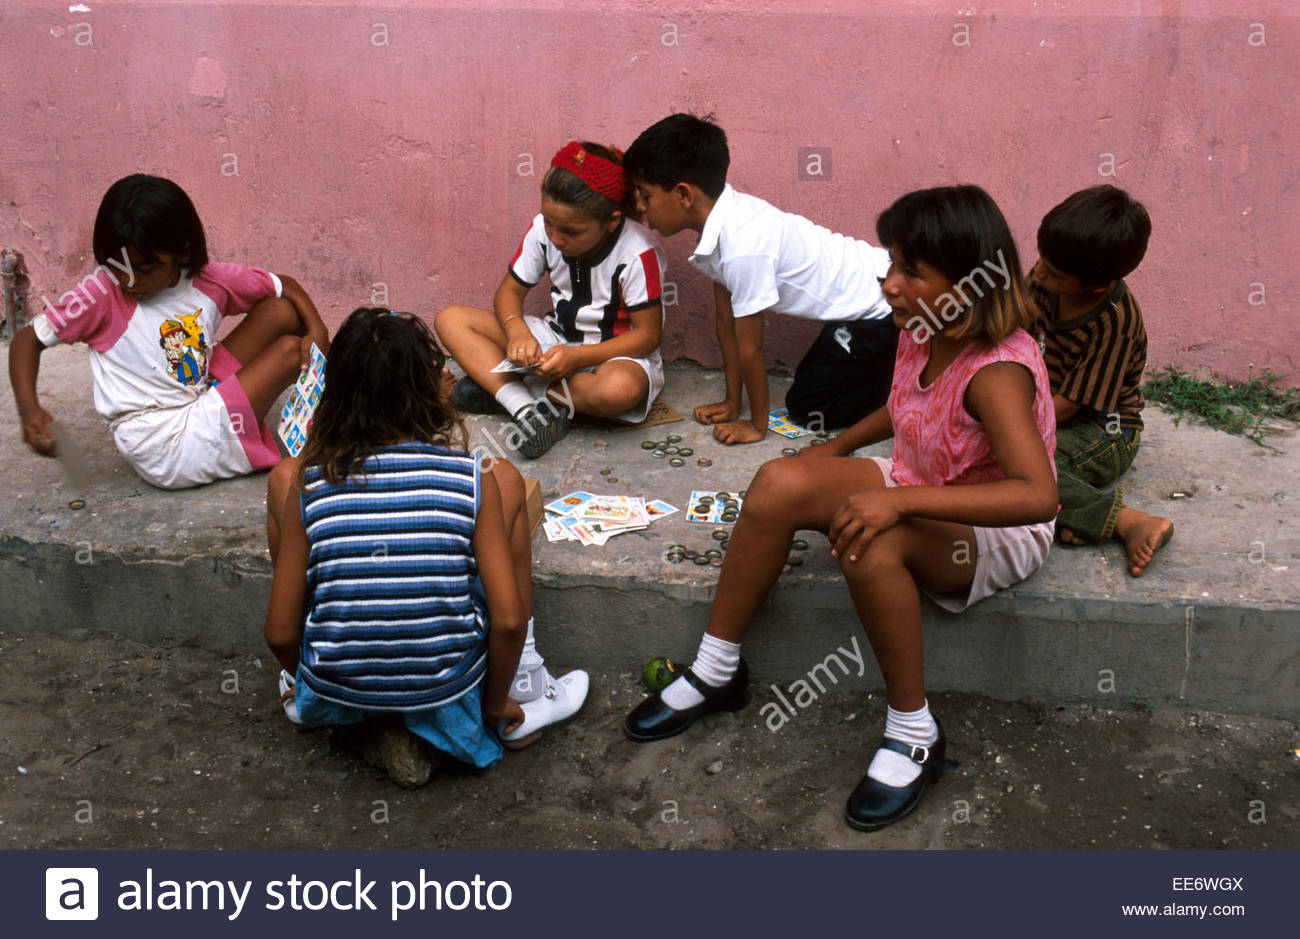 Mexcaltitan, Children playing loto in the street - Stock Image